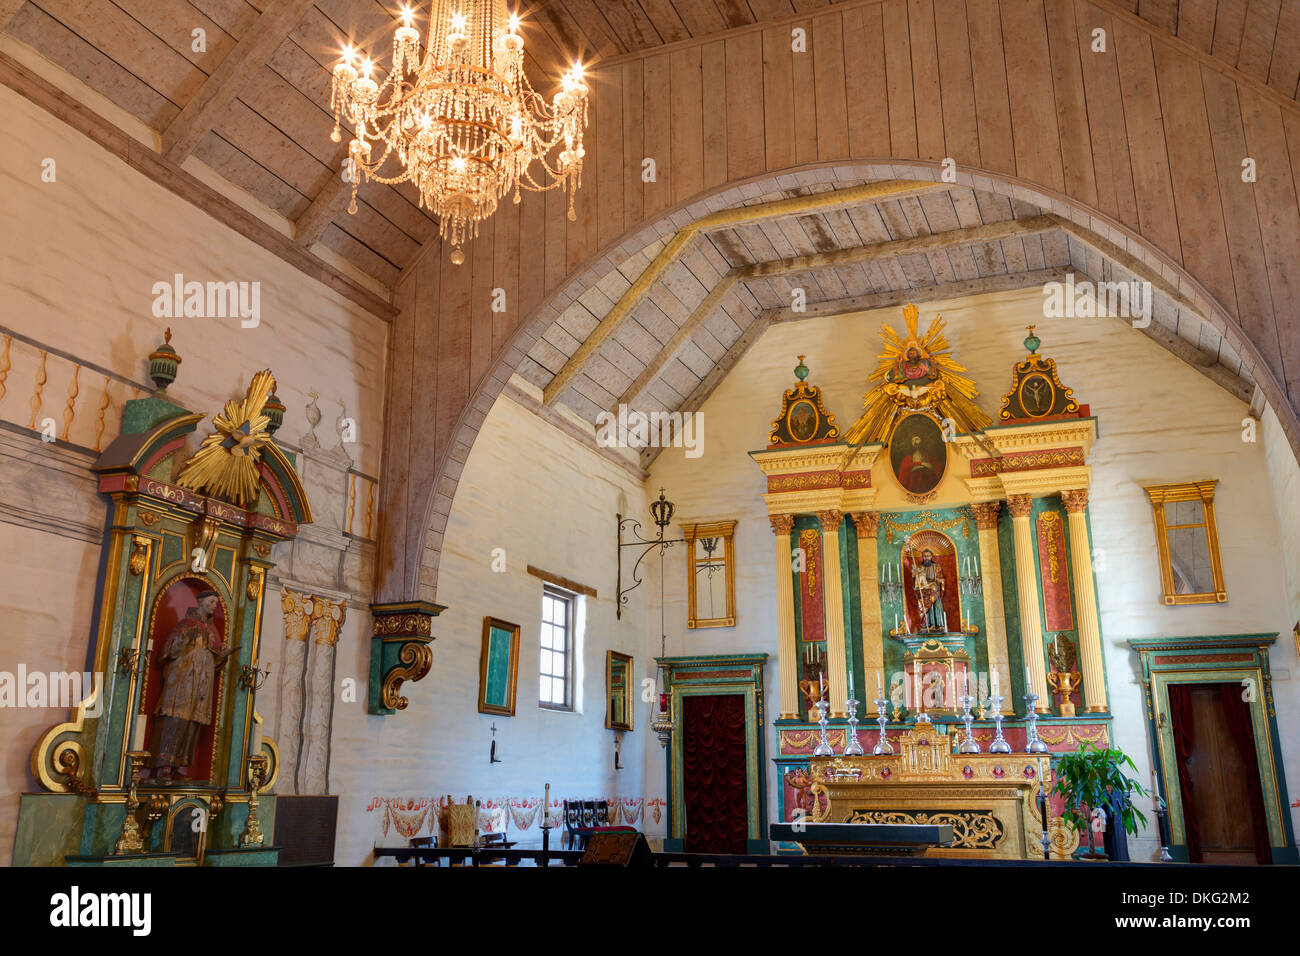 Mission San Jose, Fremont, California, United States of America, North America - Stock Image